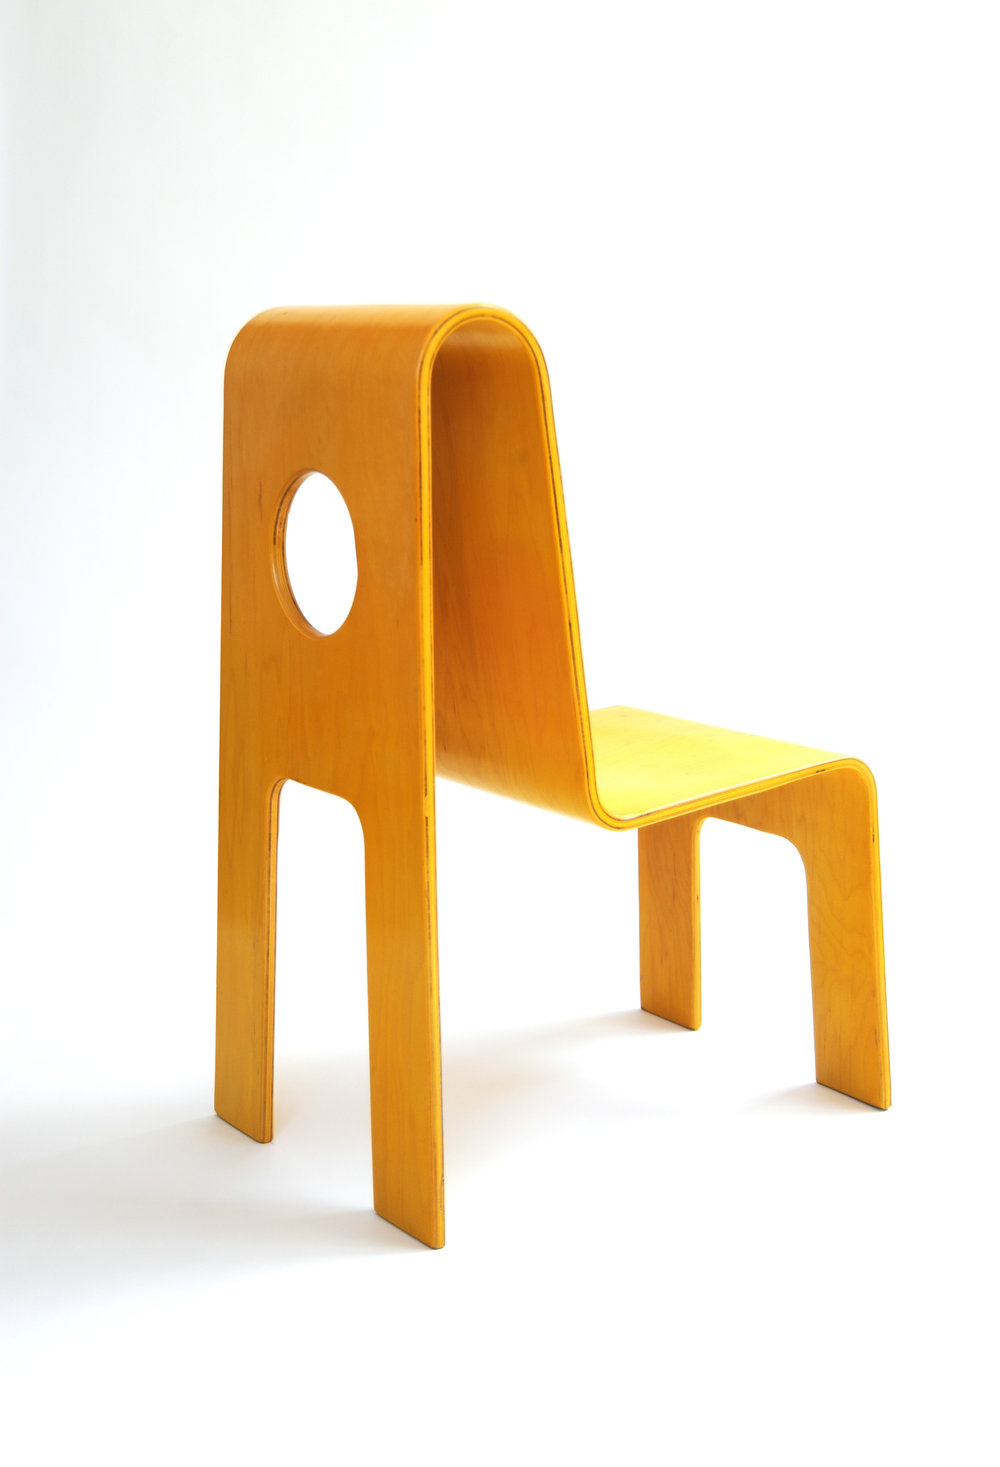 Yellow Cut Out Chair Isku Kinder-Link Unknown Origin Unknown Production 1990s Bentwood select maple veneer with acrylic poly finish (water based pigment with clear top coat acrylic finish) seat Back H 25 in, W 17 in, D 10.5 in, (Seat H: 12 in) LIST PRICE: $900 DESIGNER DISCOUNT PRICE: LEAD TIME: 3-5 Days Shipping & Handling QUANTITY IN STOCK: 1 ONLINE PLATFORMS: kM Web, Artsy